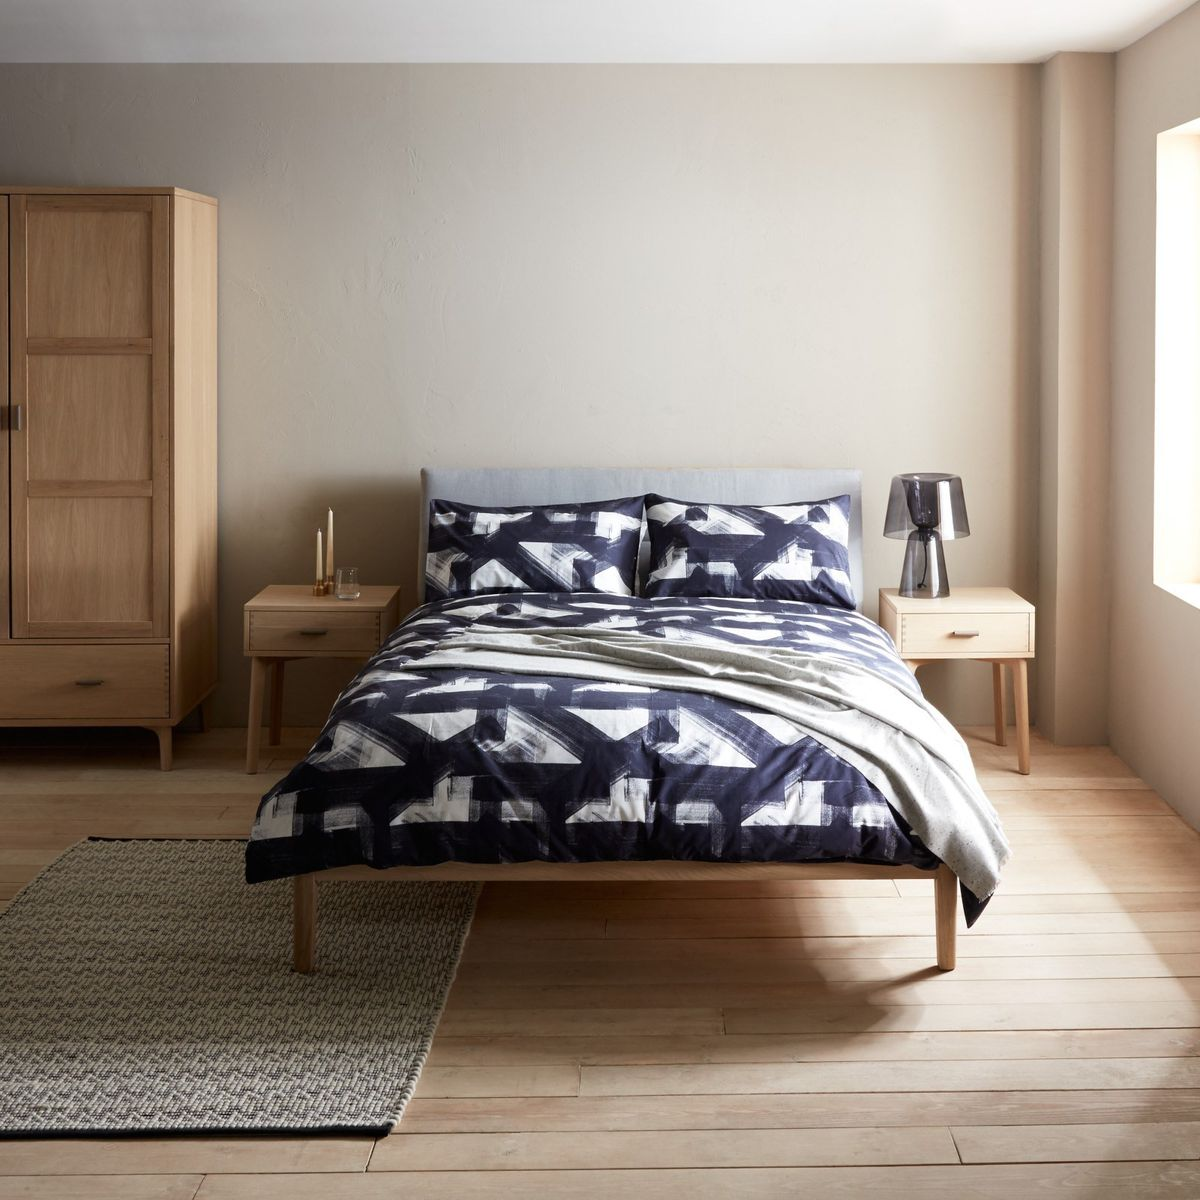 Buy Design Project by John Lewis No.049 Bed Frame, King Size ...